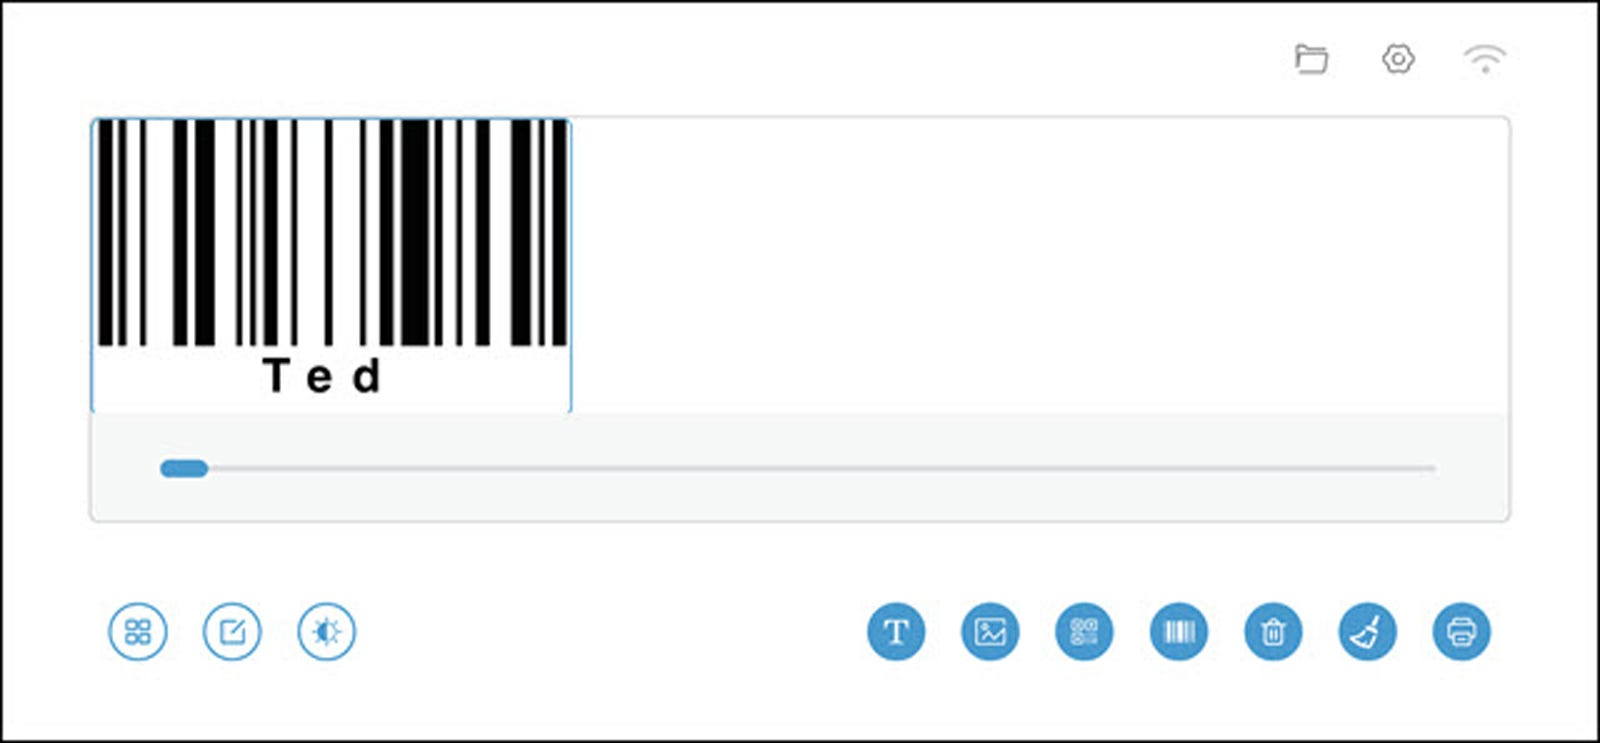 Image of bar code in Selpic Editor.